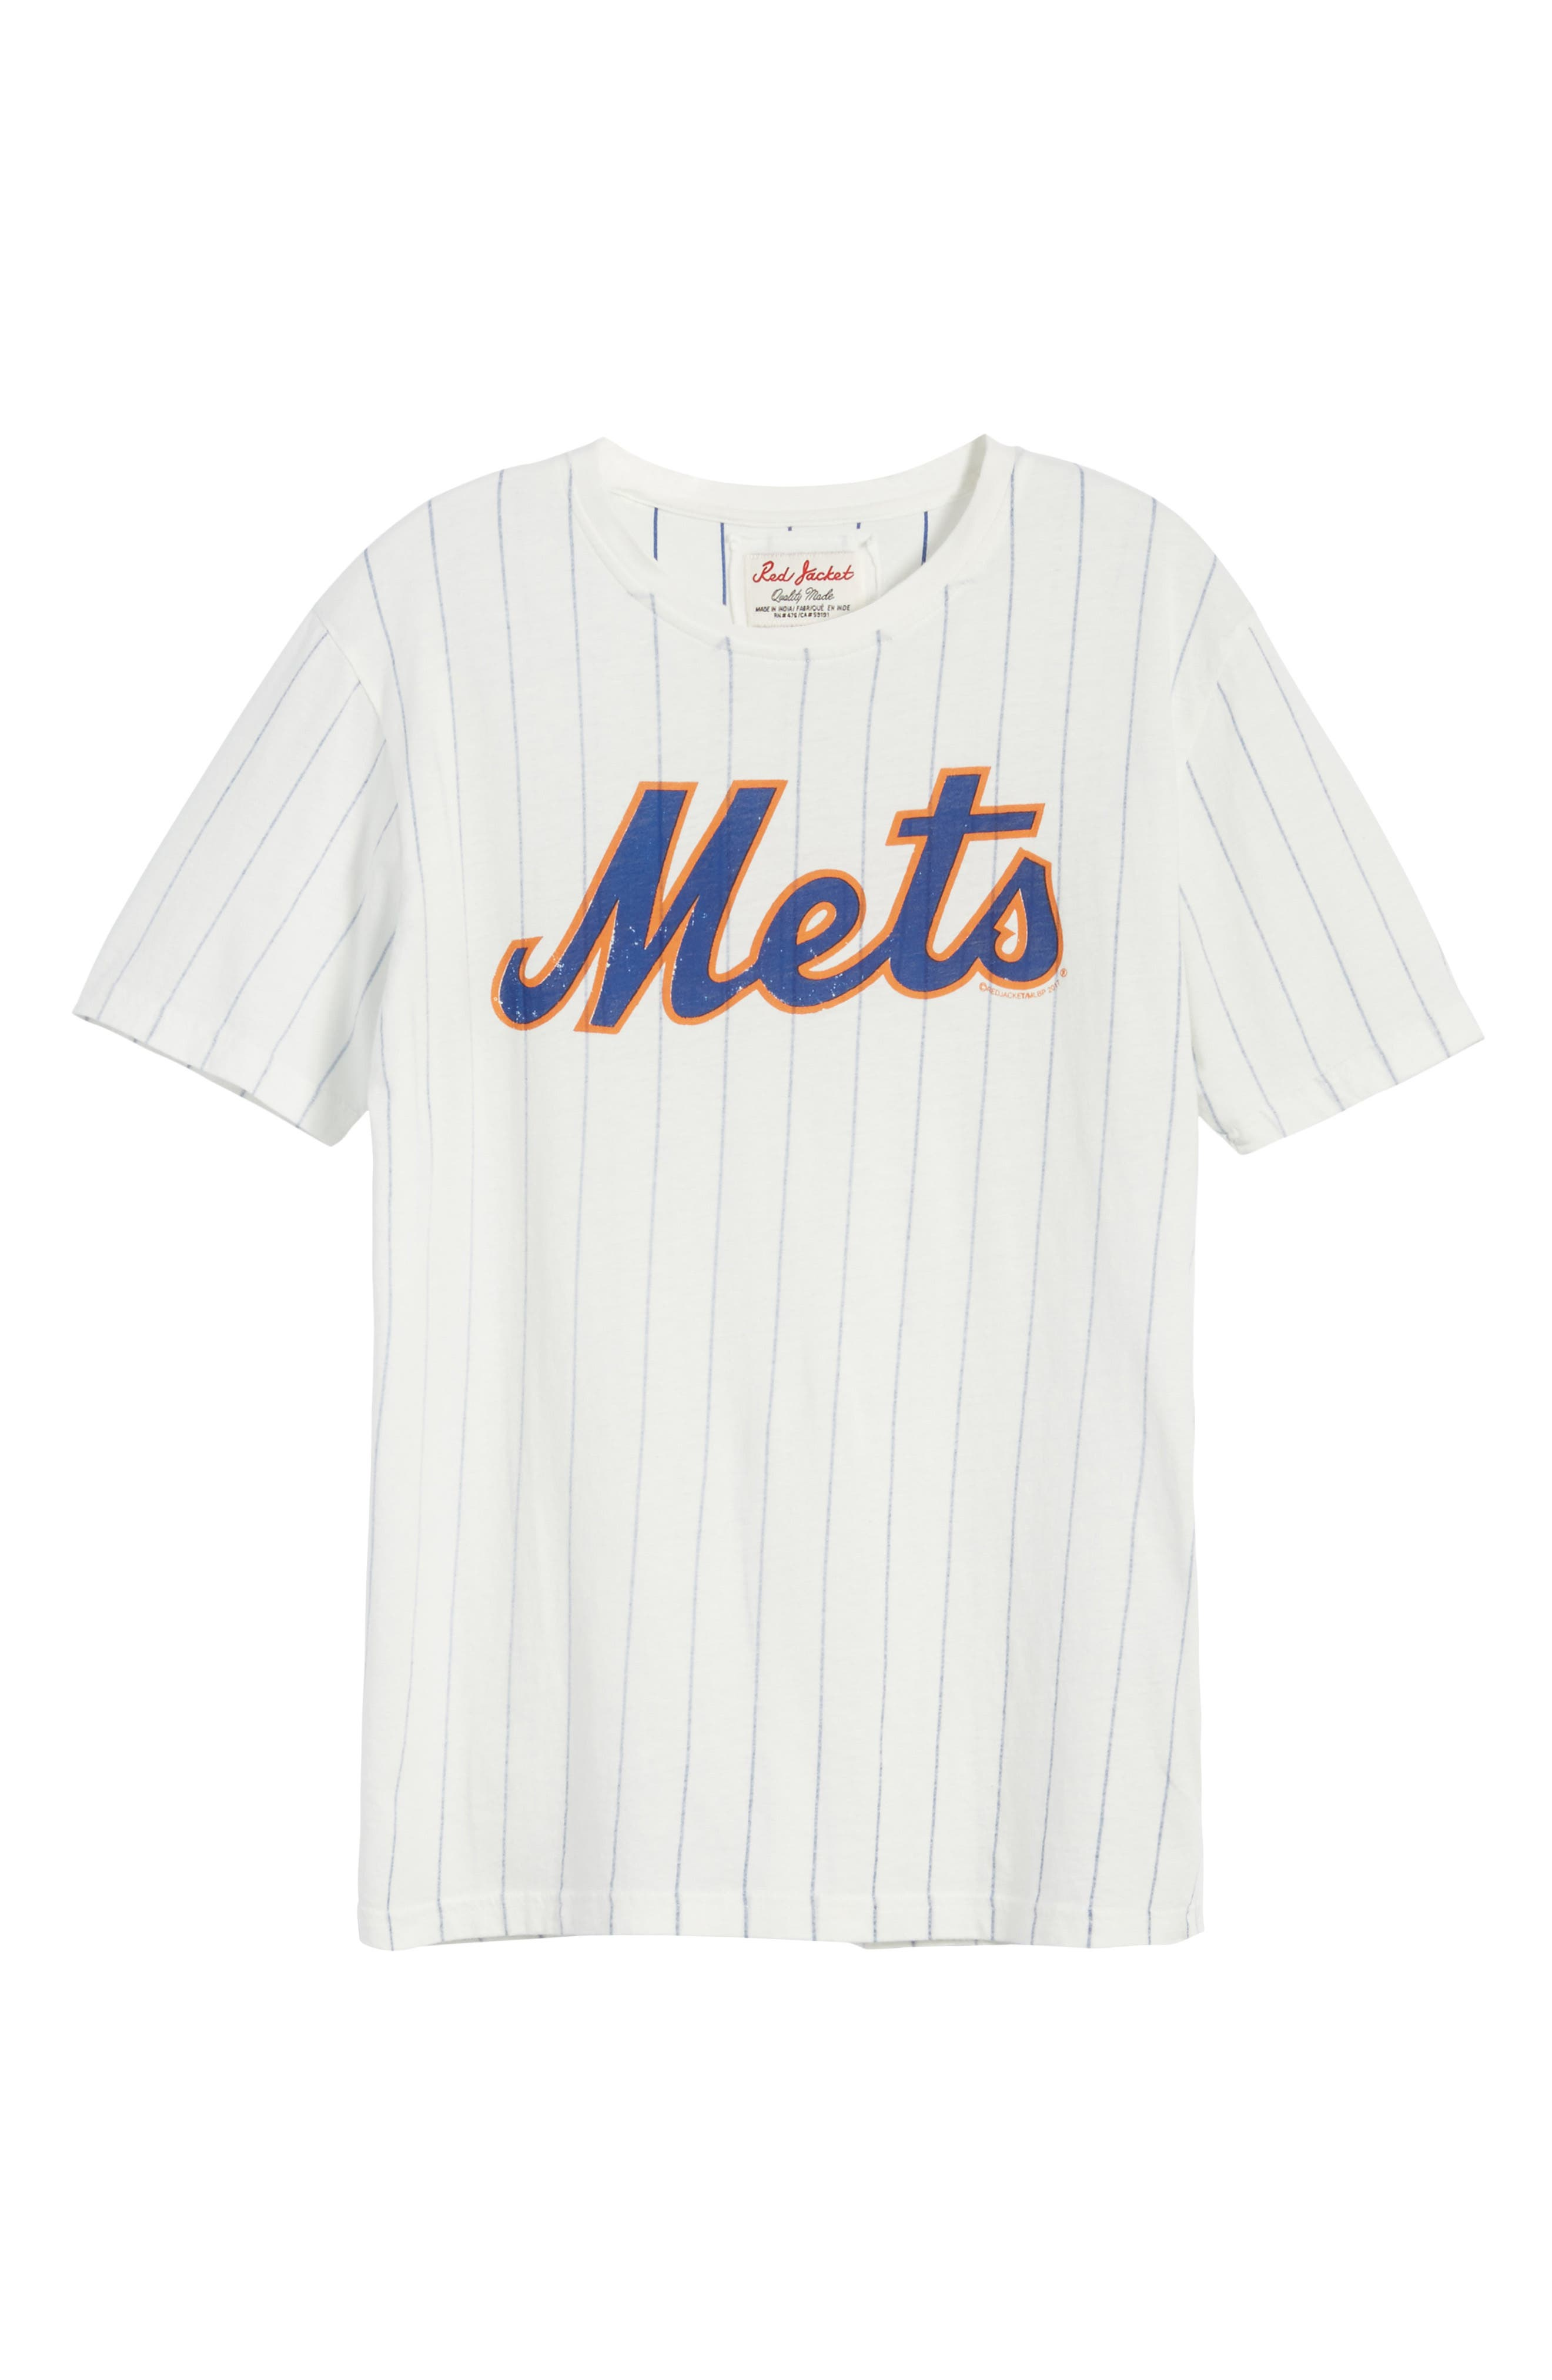 Alternate Image 6  - American Needle Brass Tack New York Mets T-Shirt